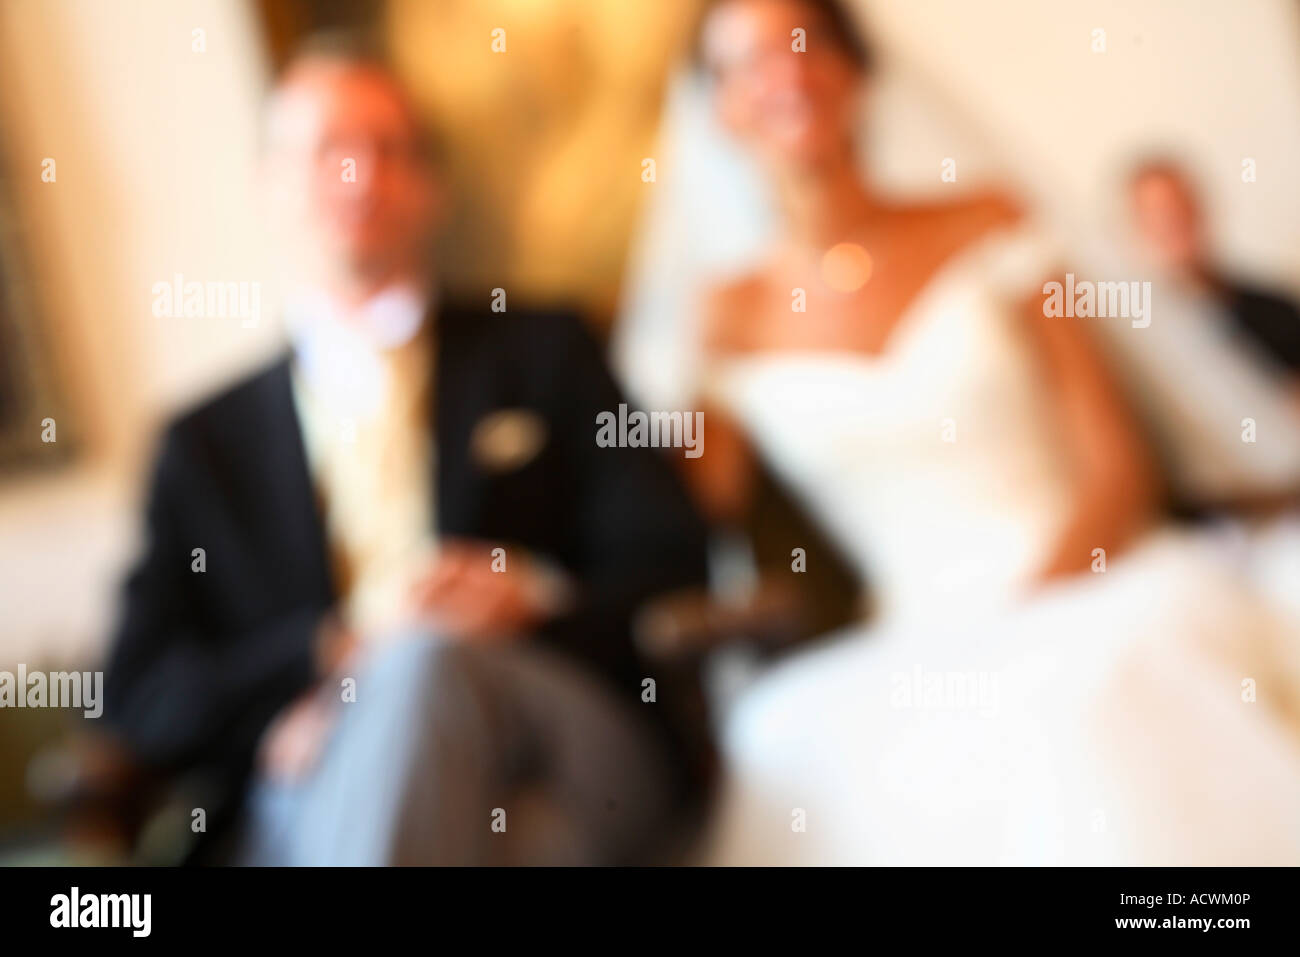 Wedding Photography From Couple In The Netherlands Not Sharp But Stock Photo Alamy